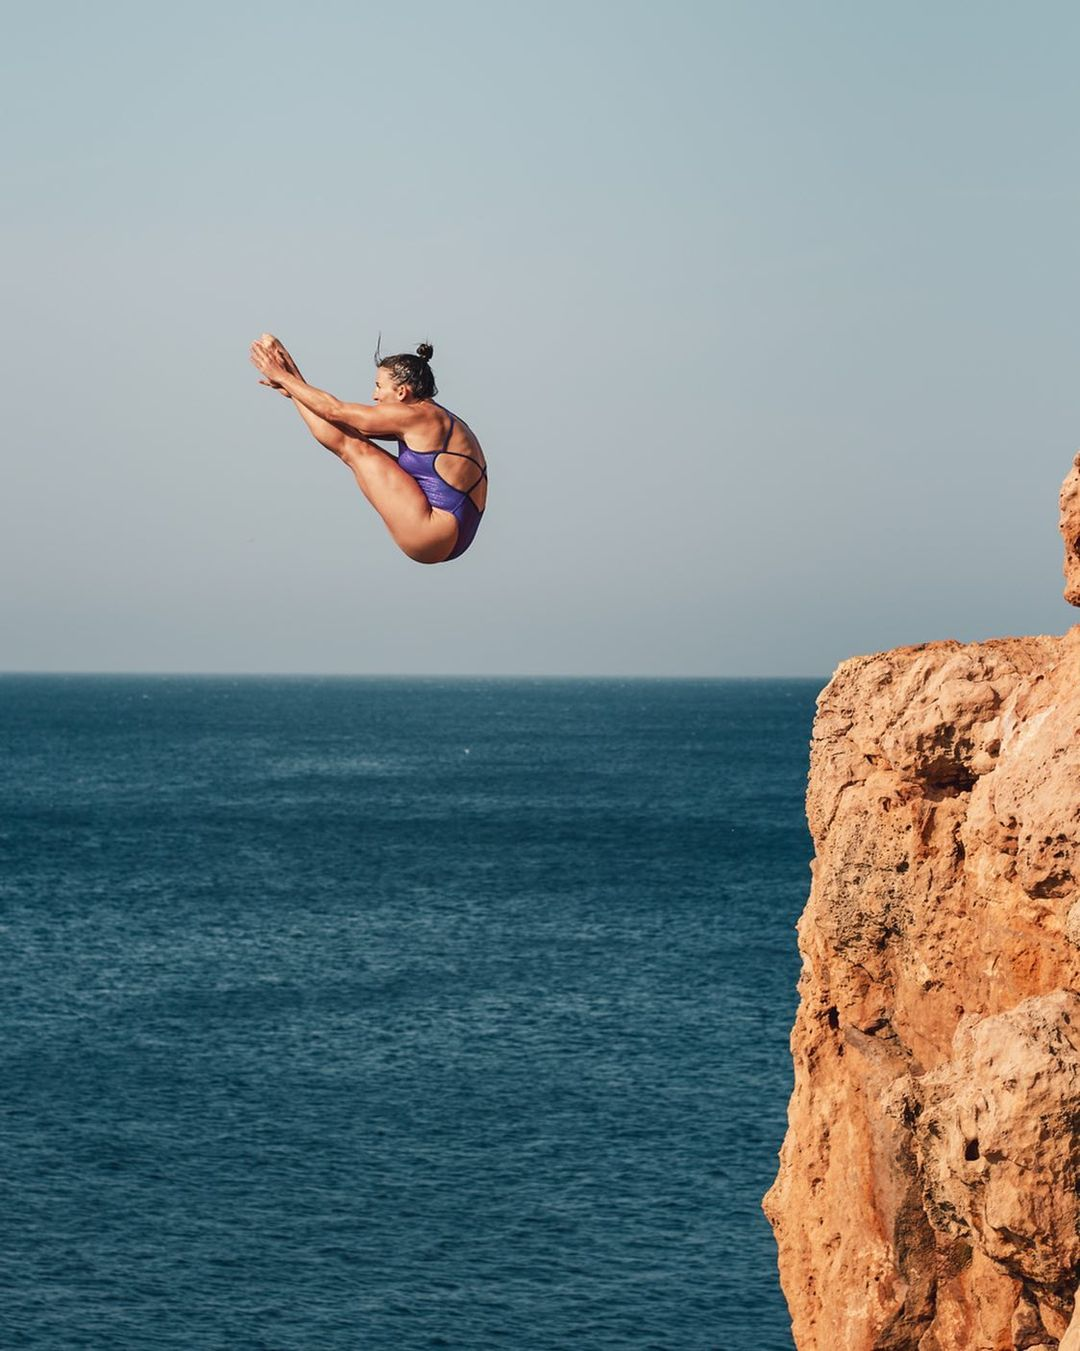 A woman practicing cliff diving from a waterfall.